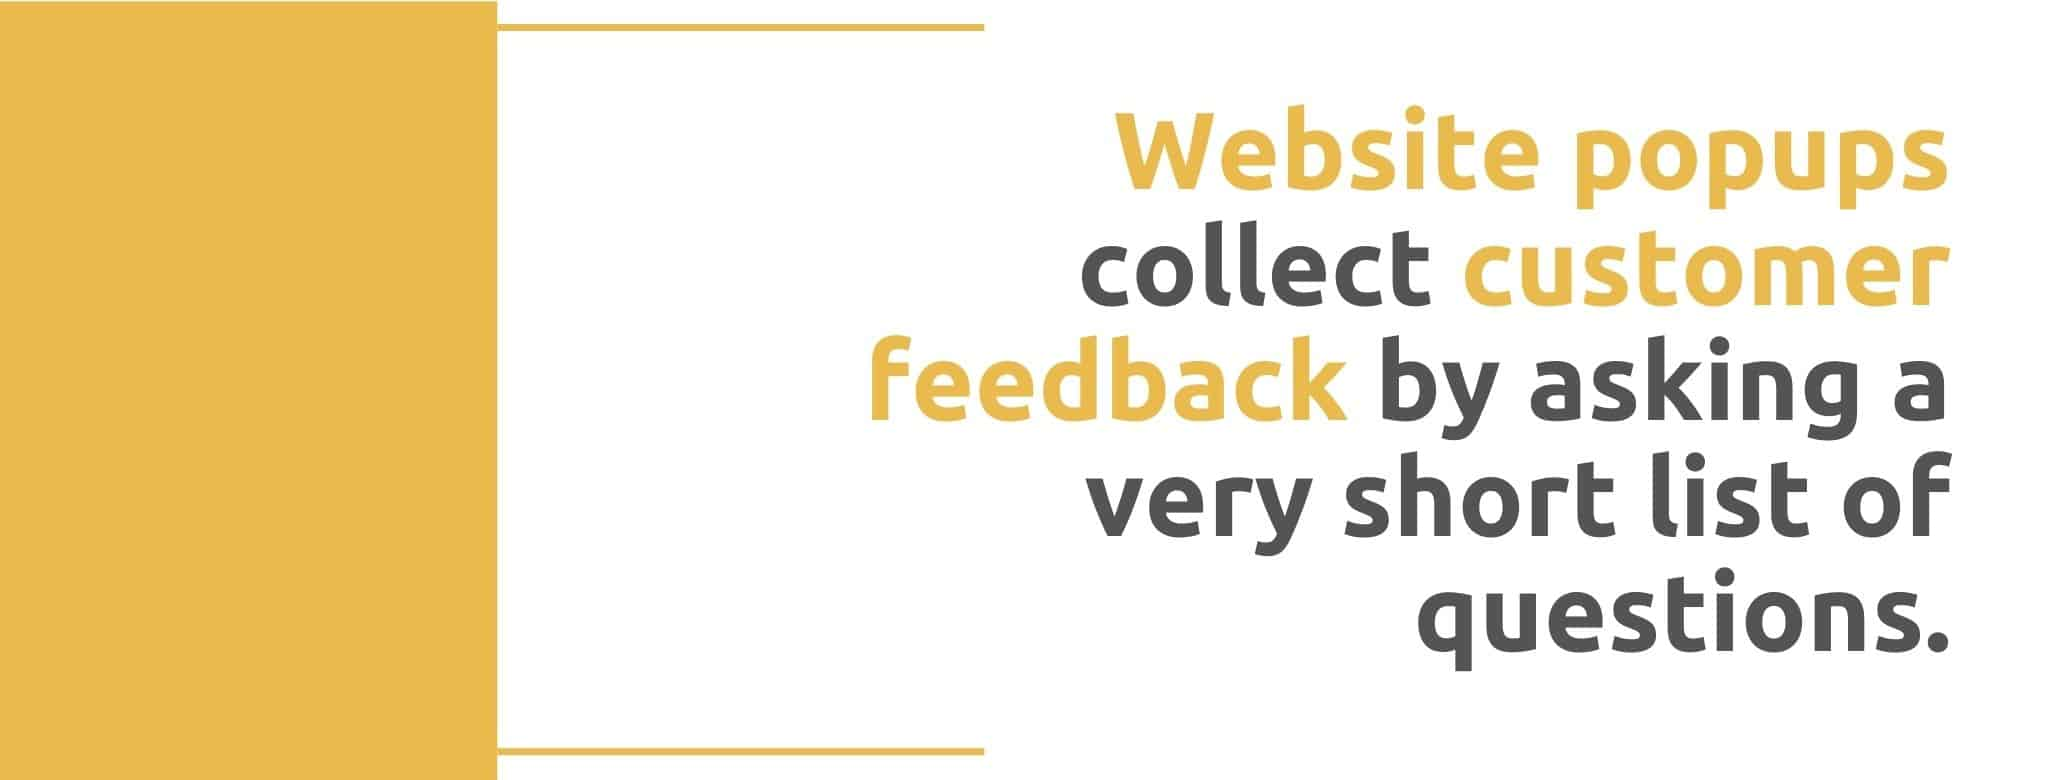 Website popups collect customer feedback by asking a very short list of questions - 22 Ways to Collect Customer Feedback - Replyco